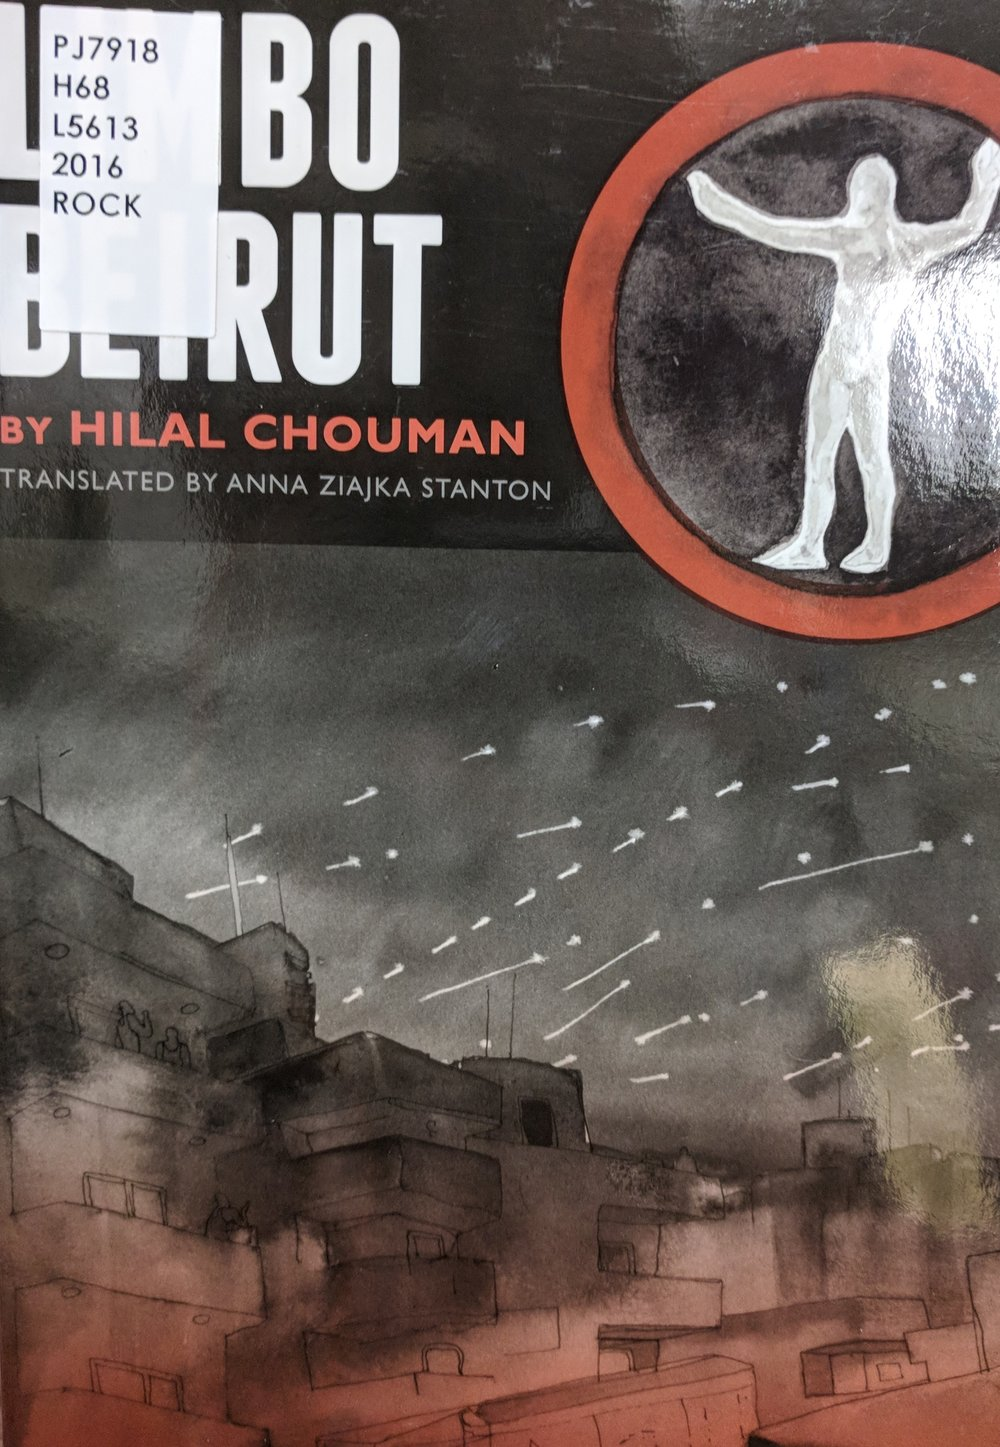 Hilal Chouman,  Limbo Beirut , translated by Anna Ziajka Stanton (Austin, Texas : Center for Middle Eastern Studies at The University of Texas at Austin, 2016)